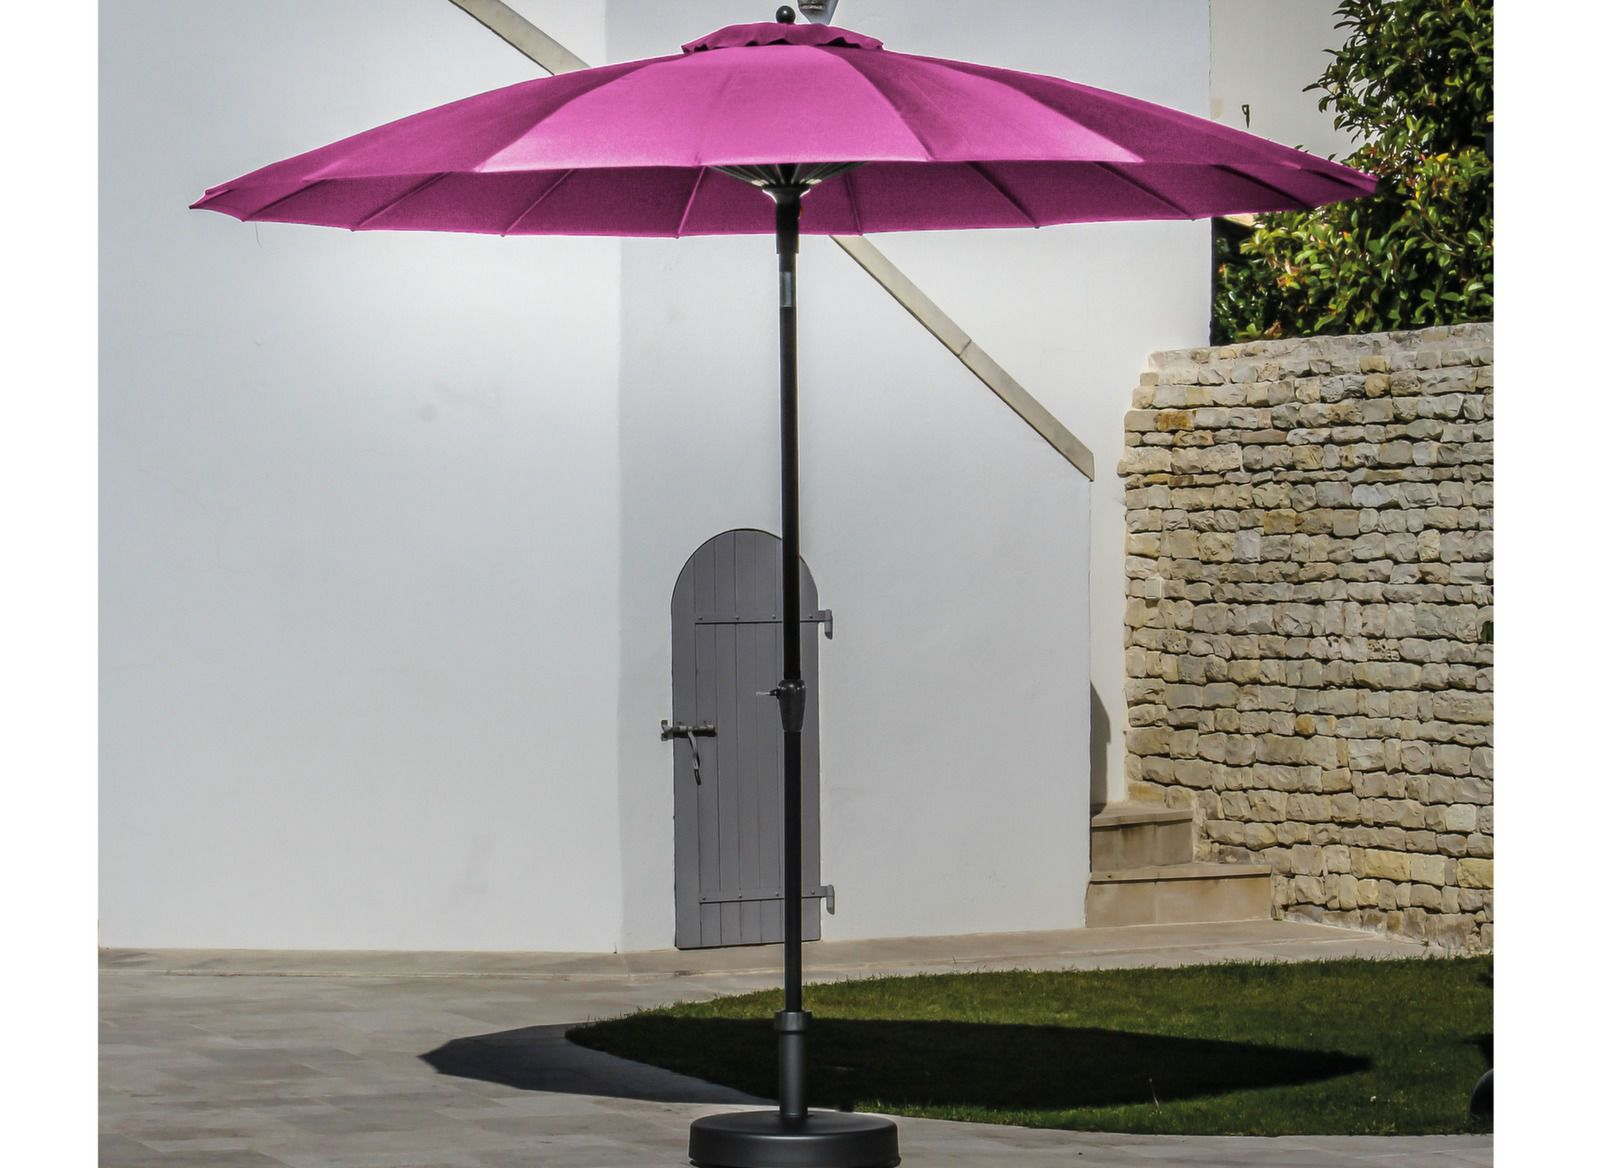 parasol droit 3x4m good gnrique parasol dport rotatif xm cru with parasol droit 3x4m excellent. Black Bedroom Furniture Sets. Home Design Ideas